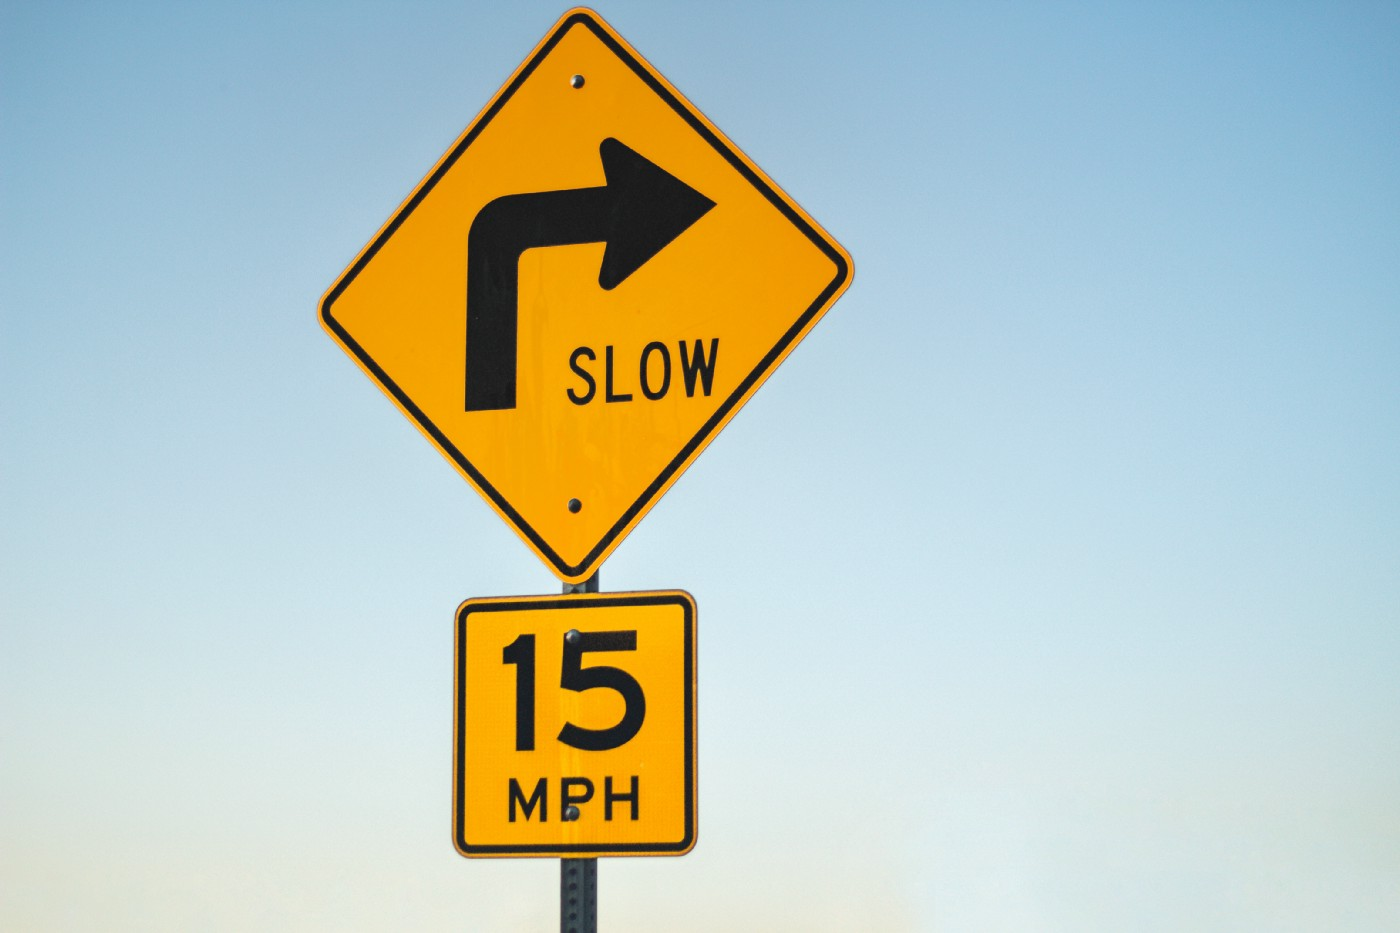 """Two road signs stacked on one another indicate a speed limit of 15 miles per hour around a corner. The only copy that accompanies the arrow icon is """"Slow"""" and """"15 MPH."""""""